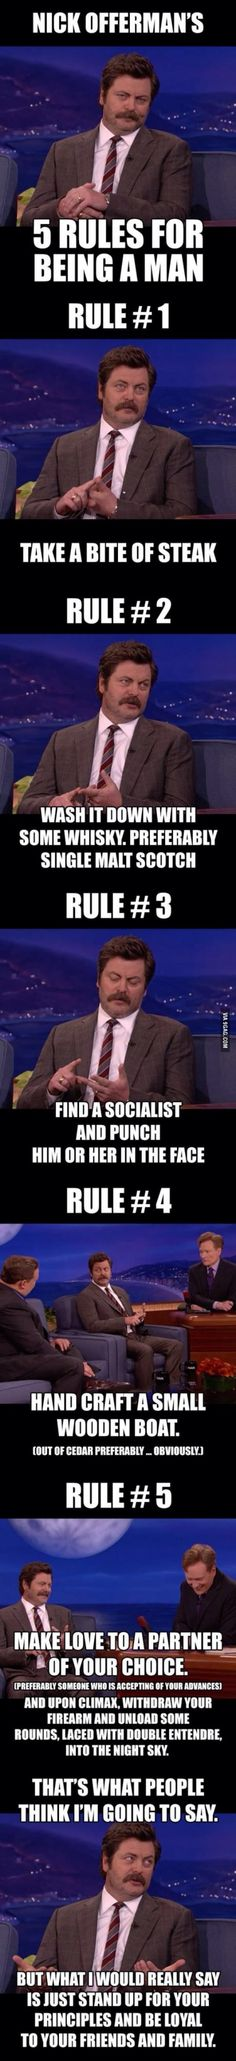 Nick Offerman Rules For Being A Man